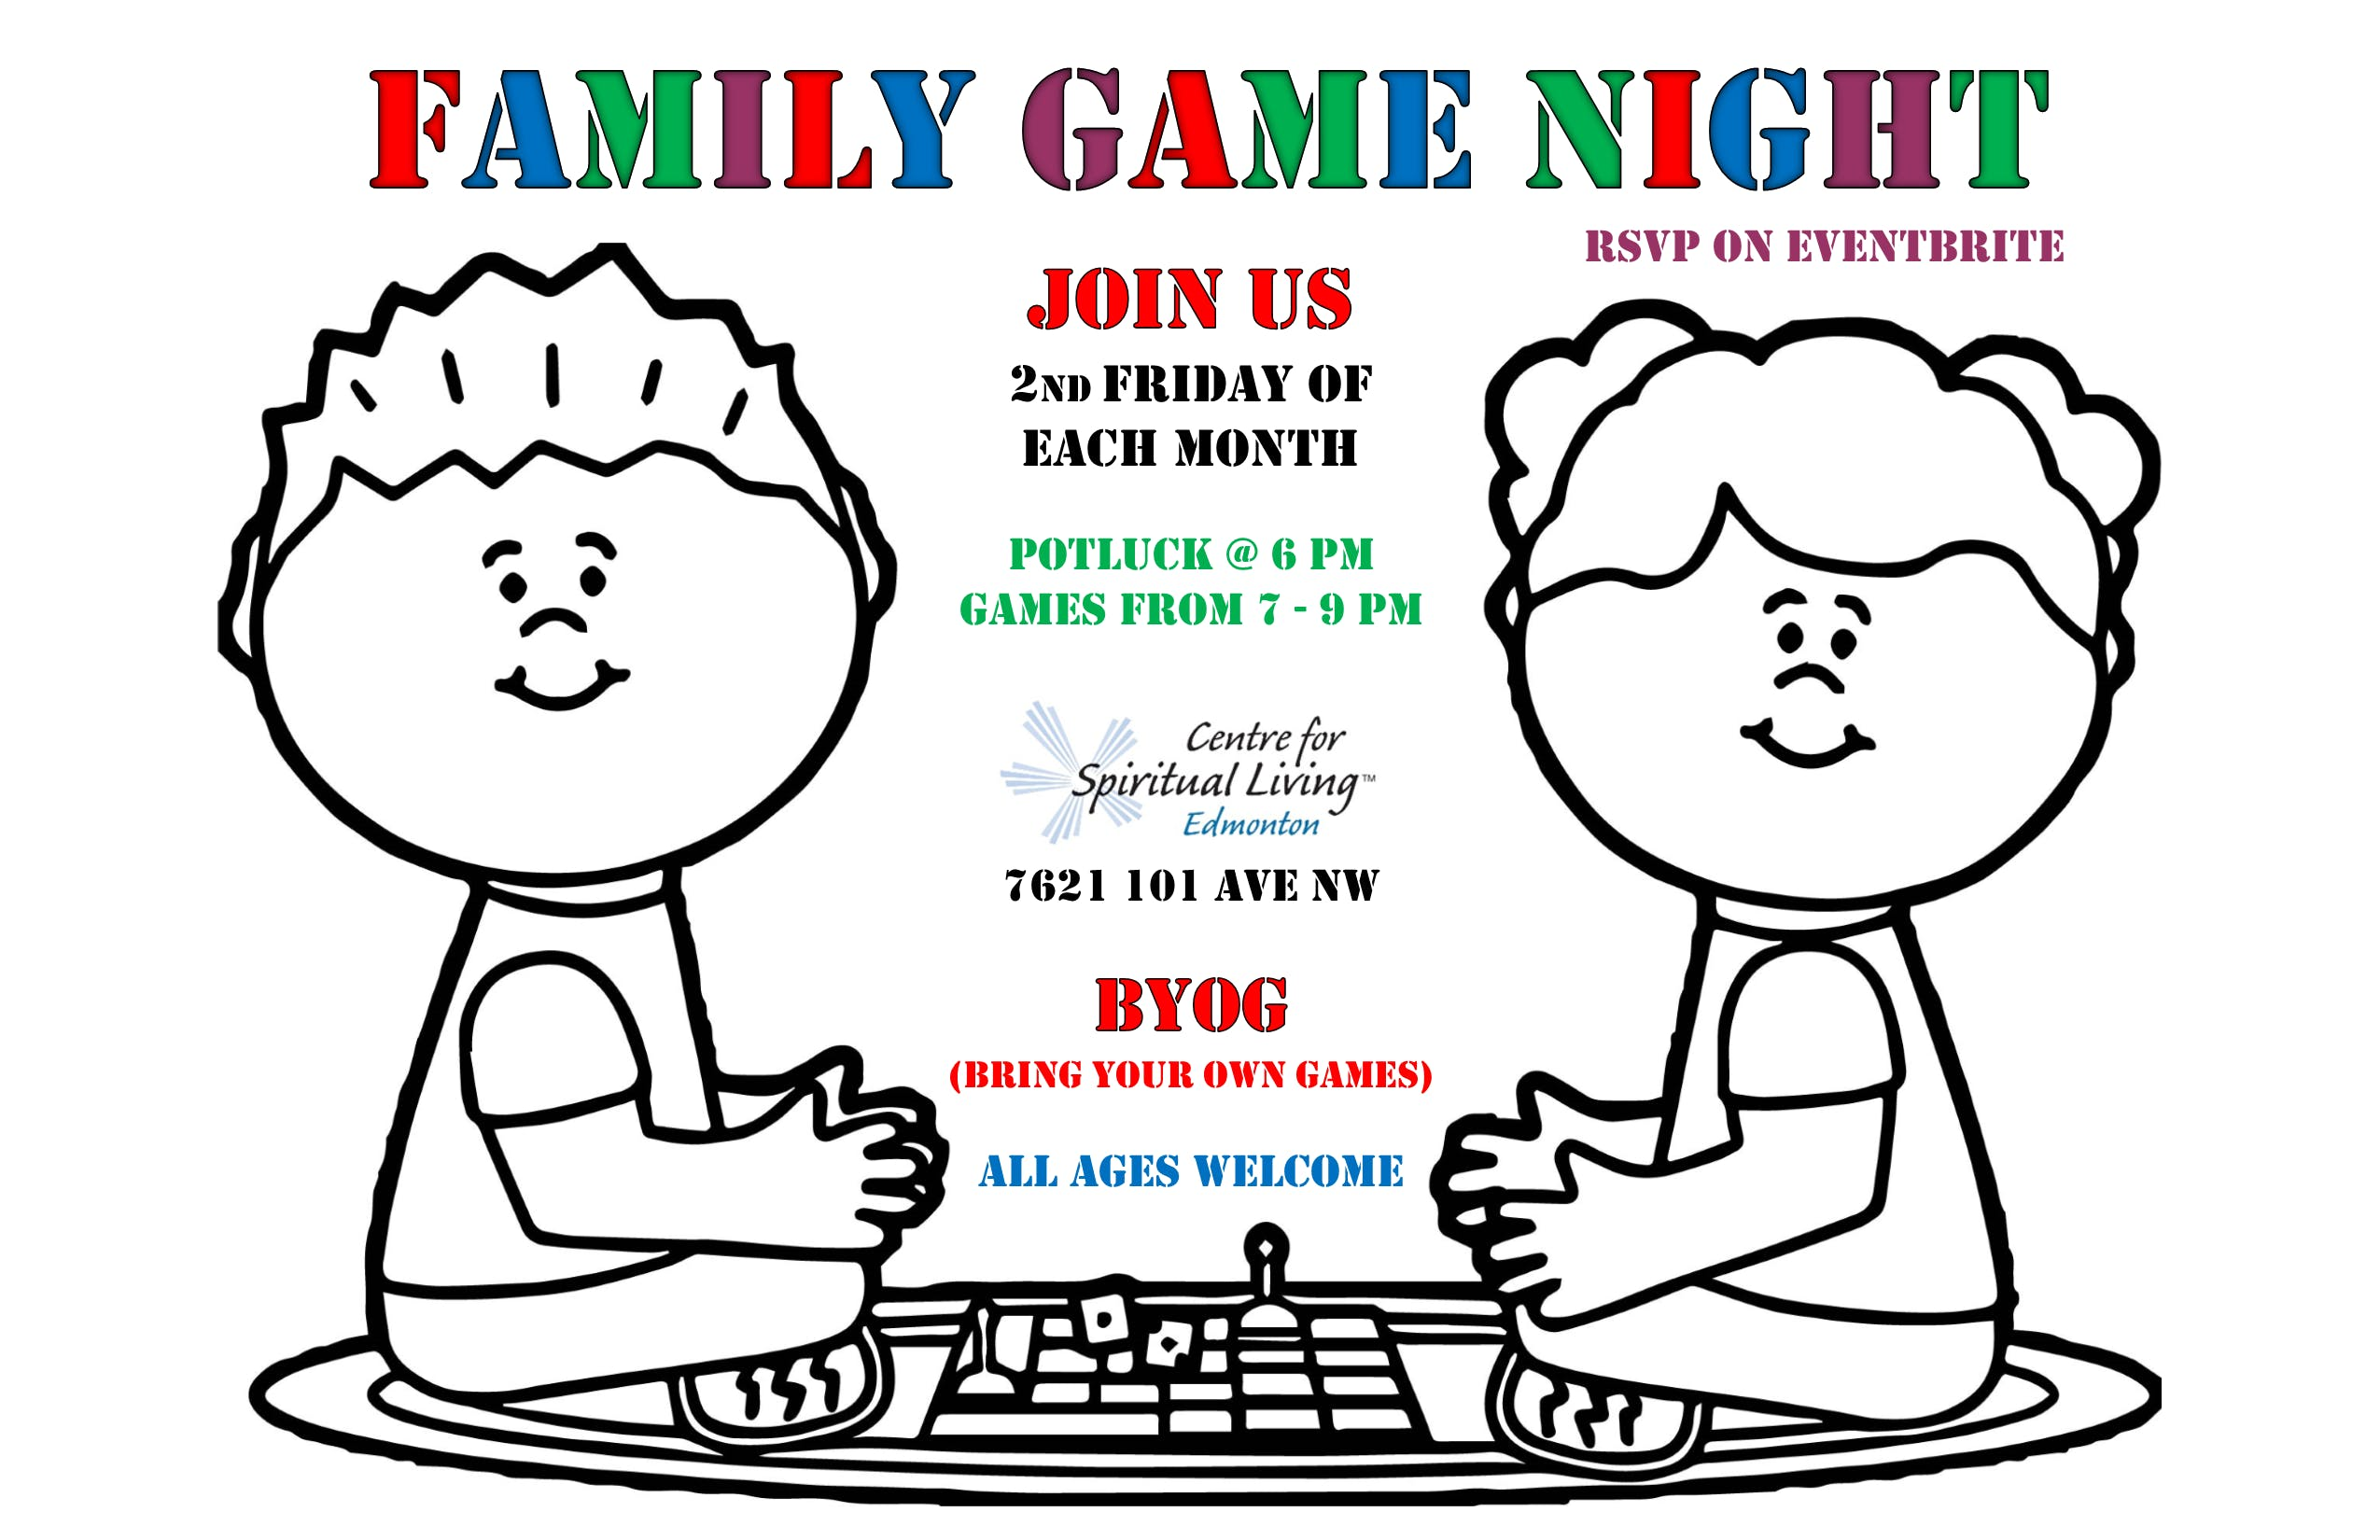 Family Game Night at The Centre